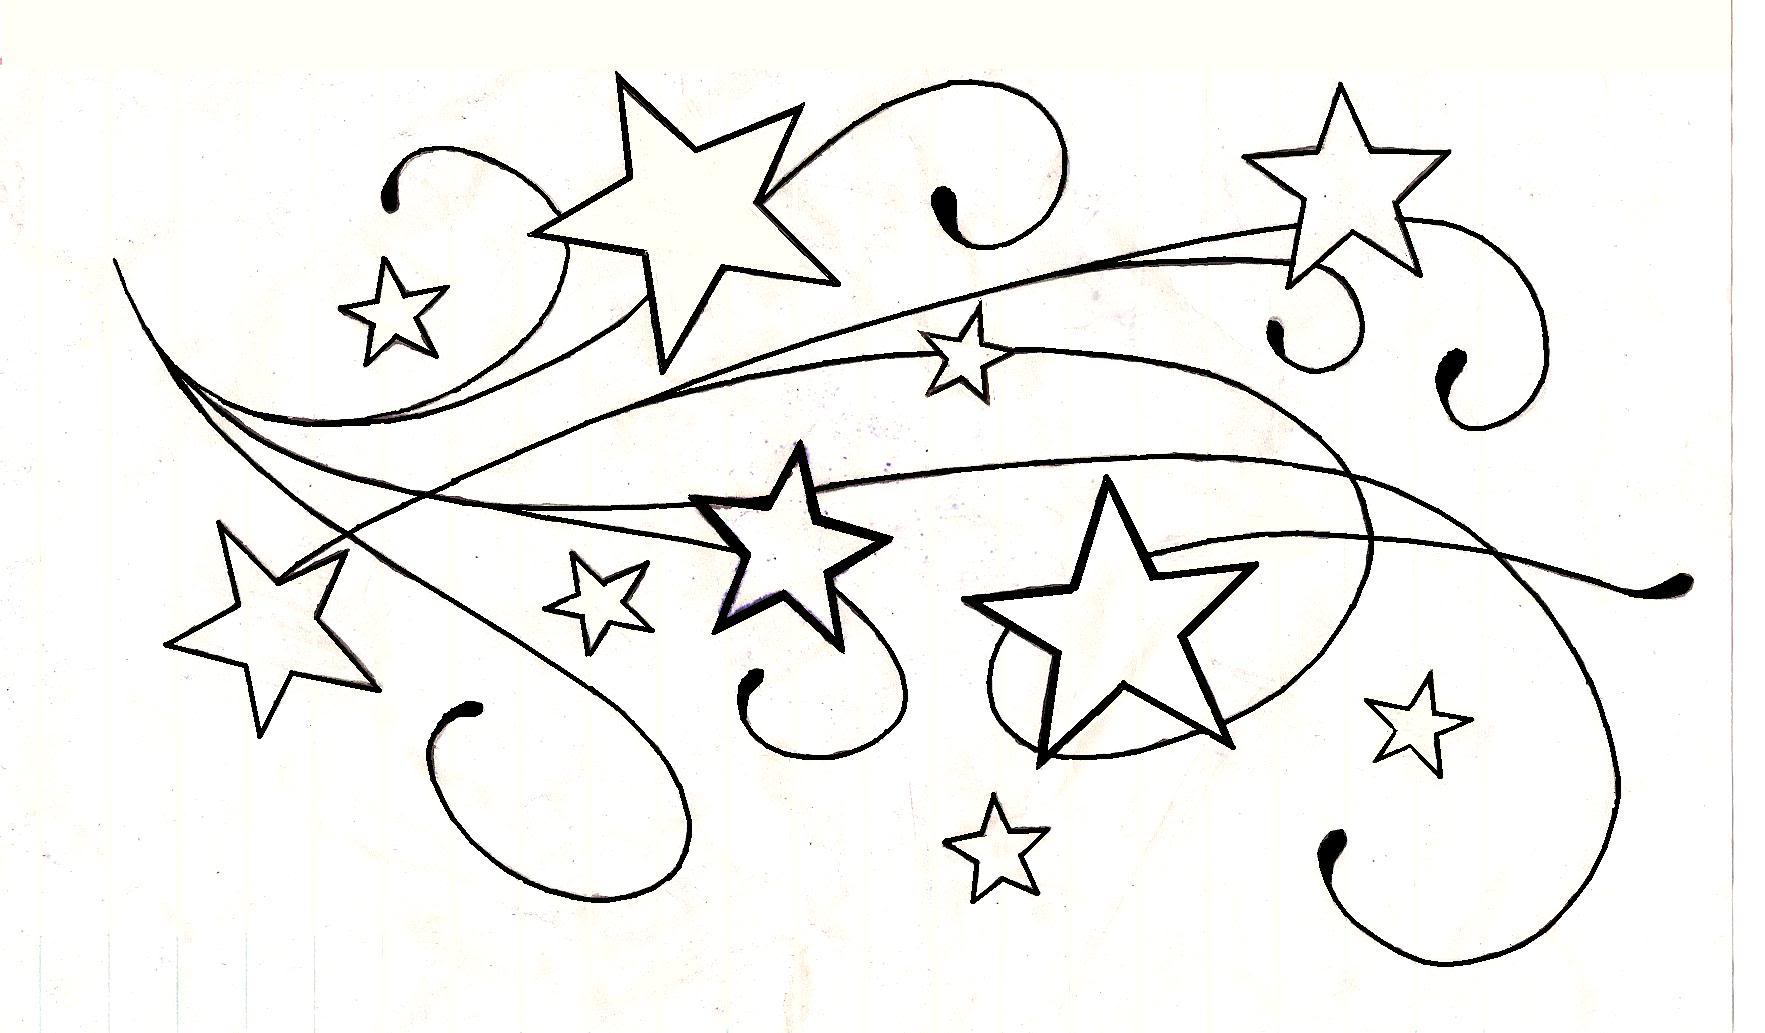 Star design tattoos for wrists hurt